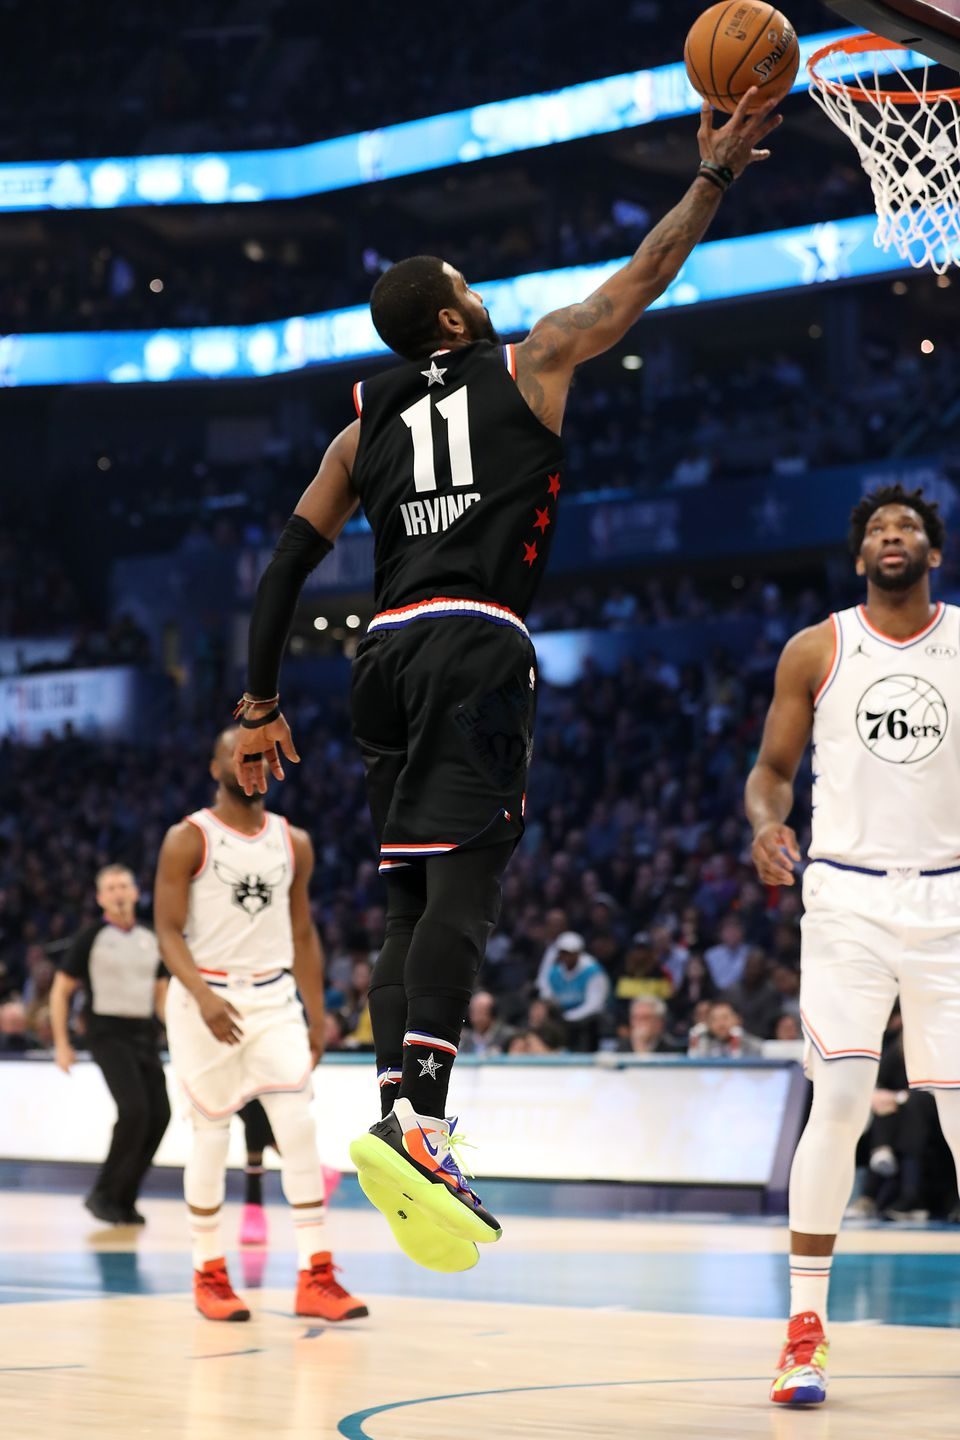 Kyrie Irving finishes off a layup during the first half of the NBA All-Star Game.